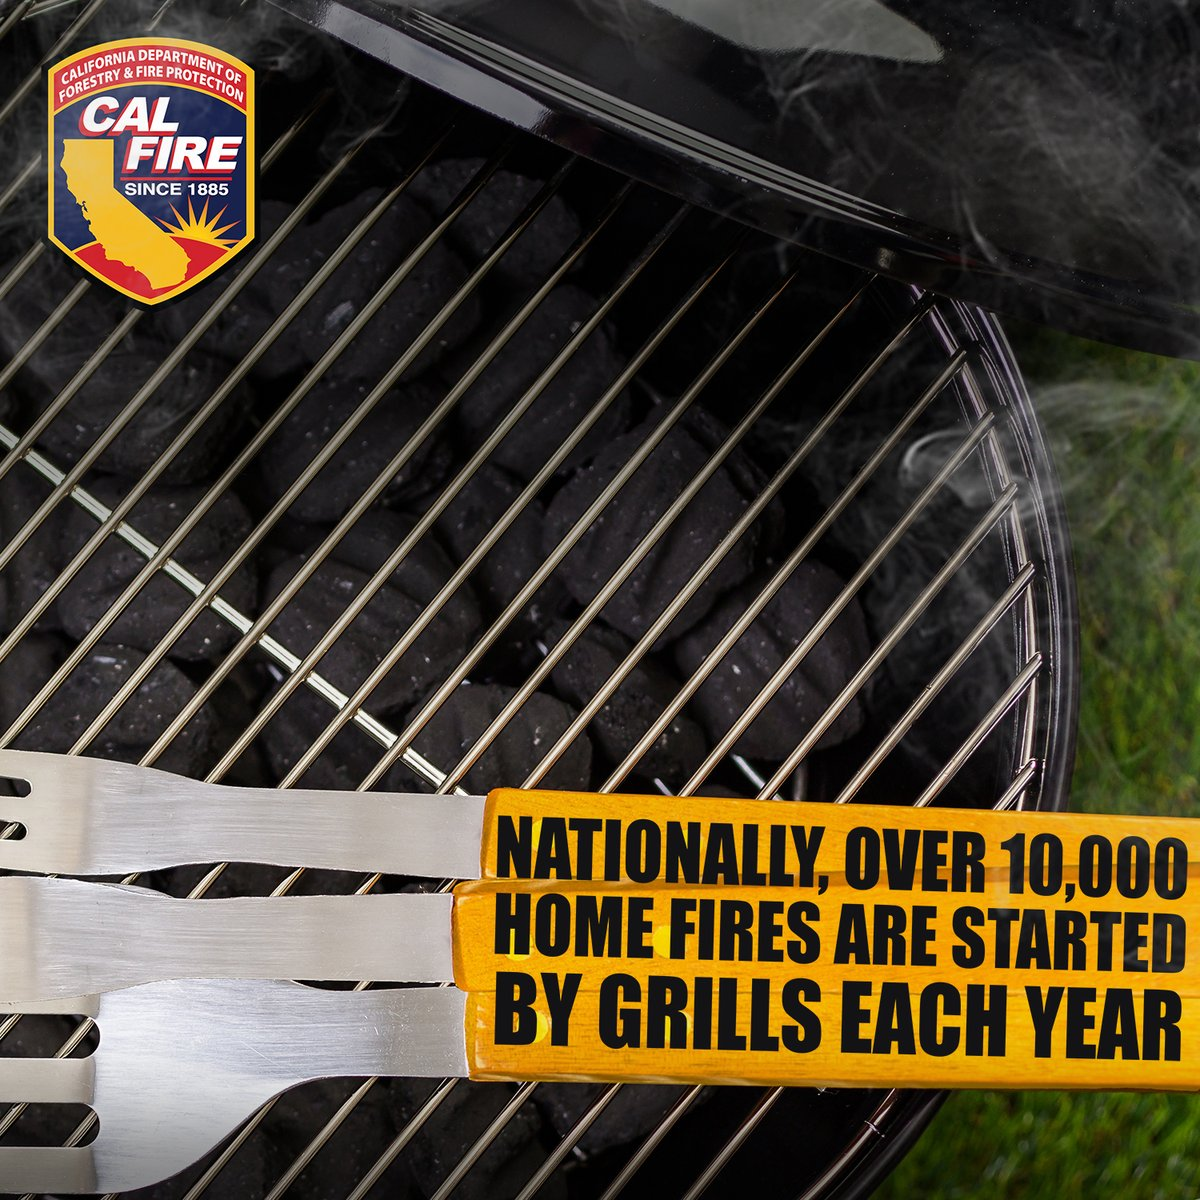 Did you know July is the peak month for grill fires? Avoid a potential disaster by removing grease or fat buildup from your grill. Keeping your #grill clean is an easy way to stay fire safe this #summer!